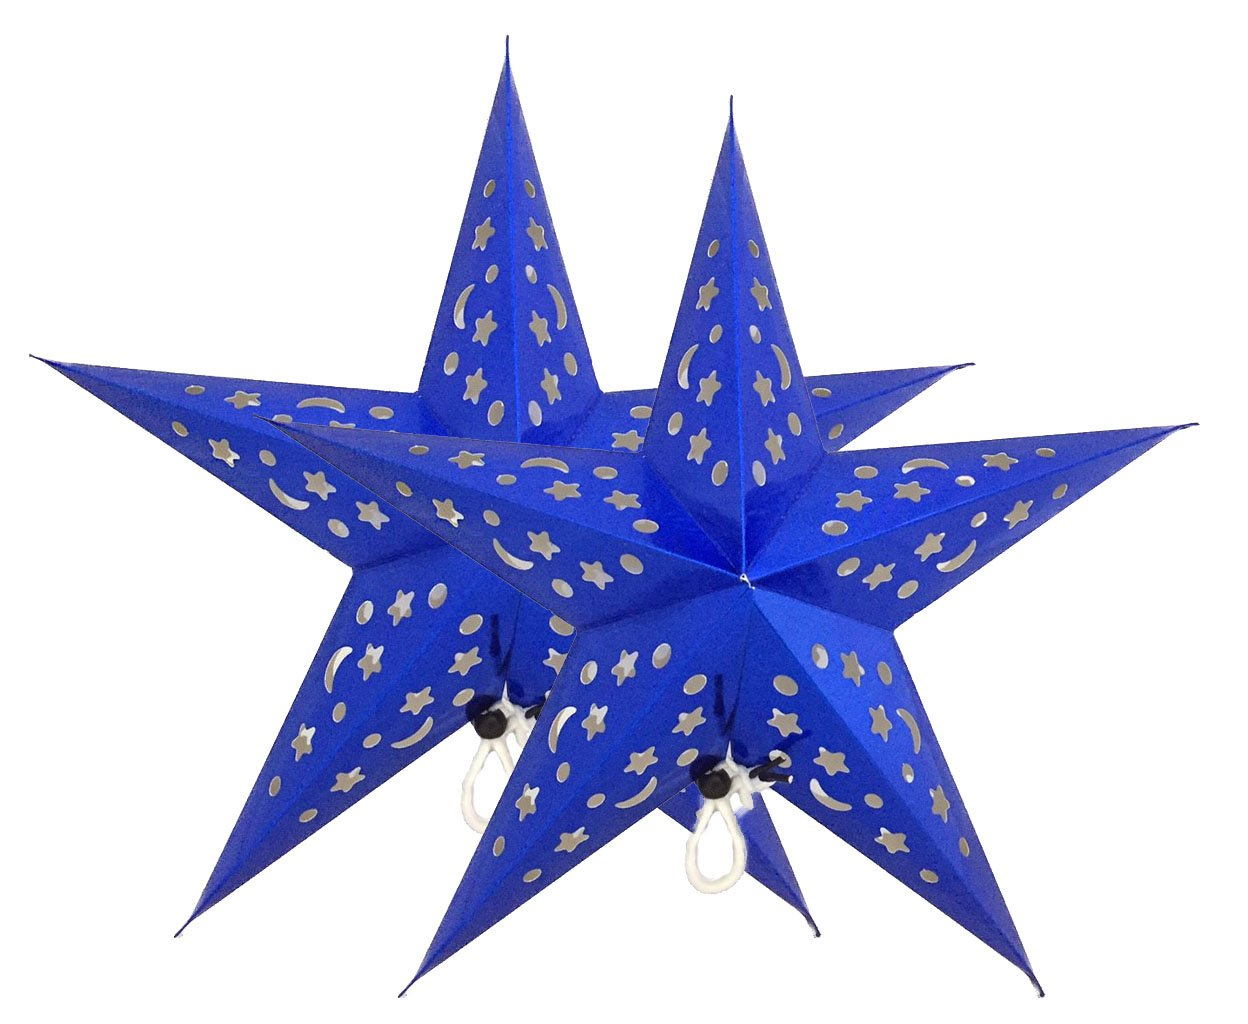 SiamSiri a Pair of 9'' Medium Paper Blue Star Lantern 3D Pentagram Lampshade for Christmas Xmas Party Holloween Birthday Colorful Hanging Home Indoor Outdoor Decorations (Lights Not Included)